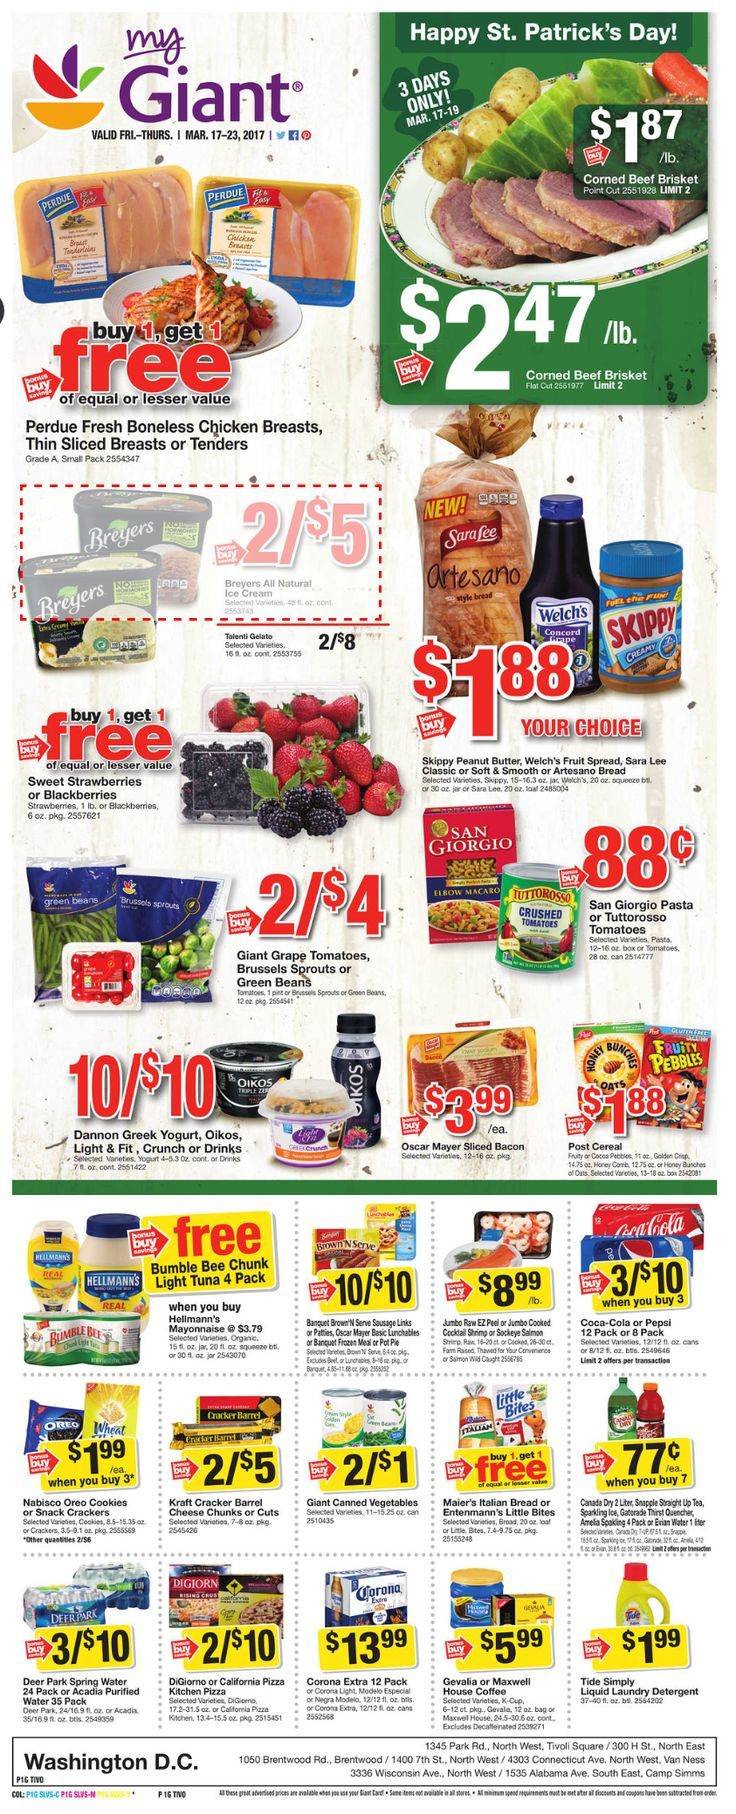 Giant Food Weekly Ad March 17 - 23, 2017 - http://www.olcatalog.com/grocery/giant-food-weekly-ad.html